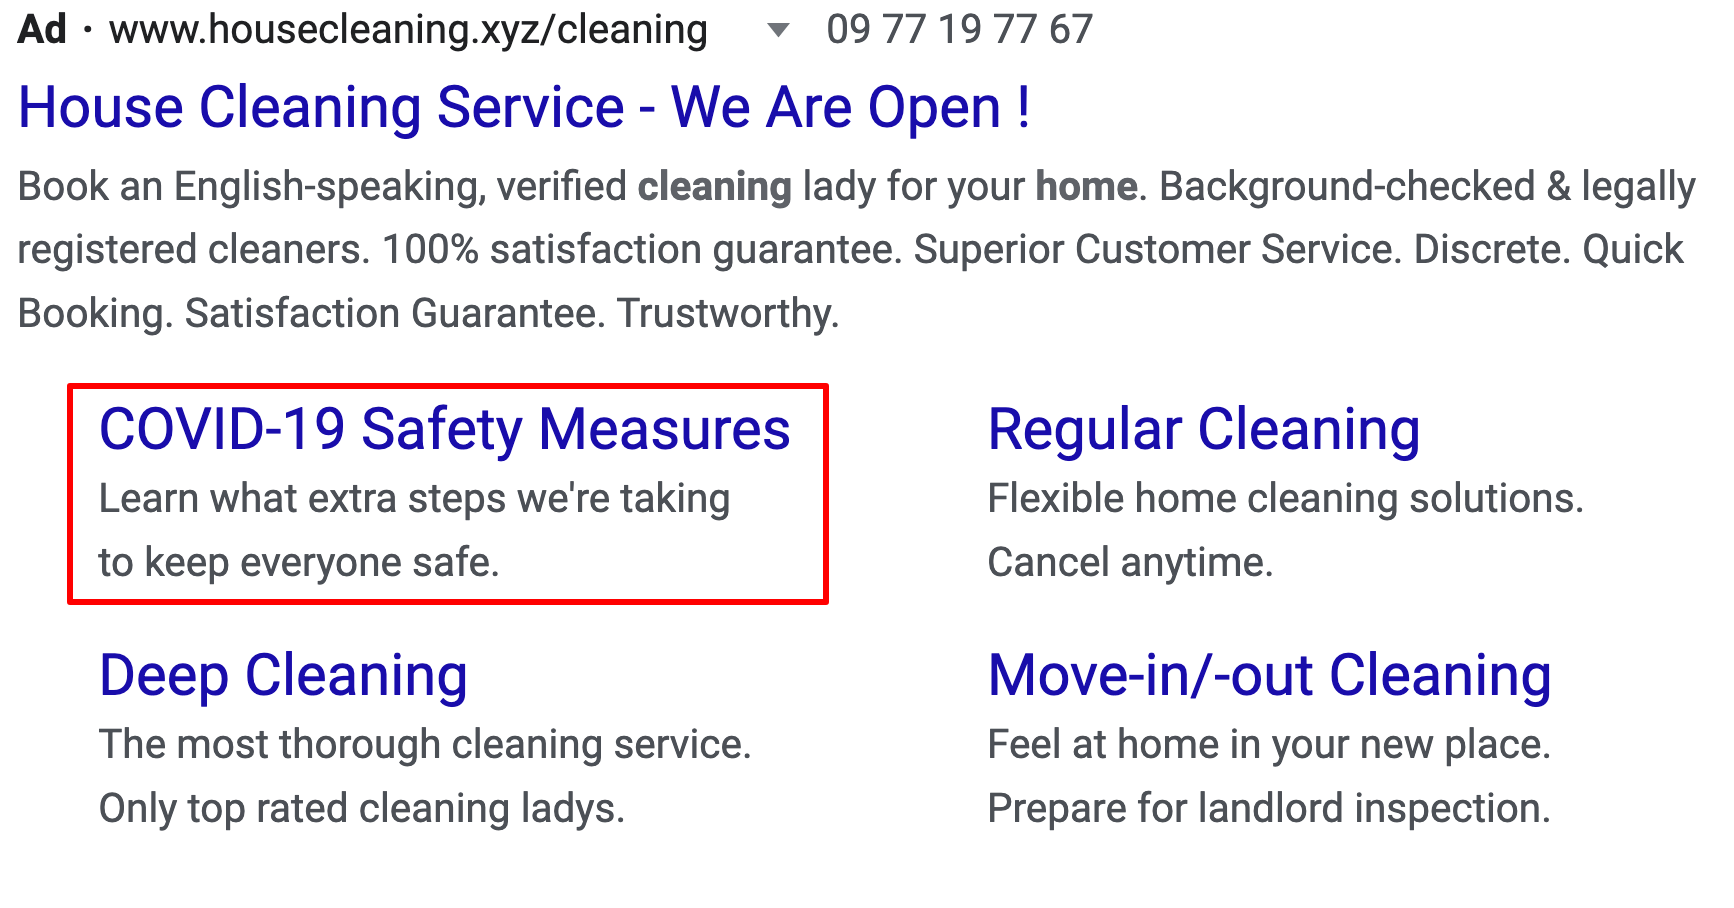 Google Ads Extensions pushing Covid-19 safety mesures